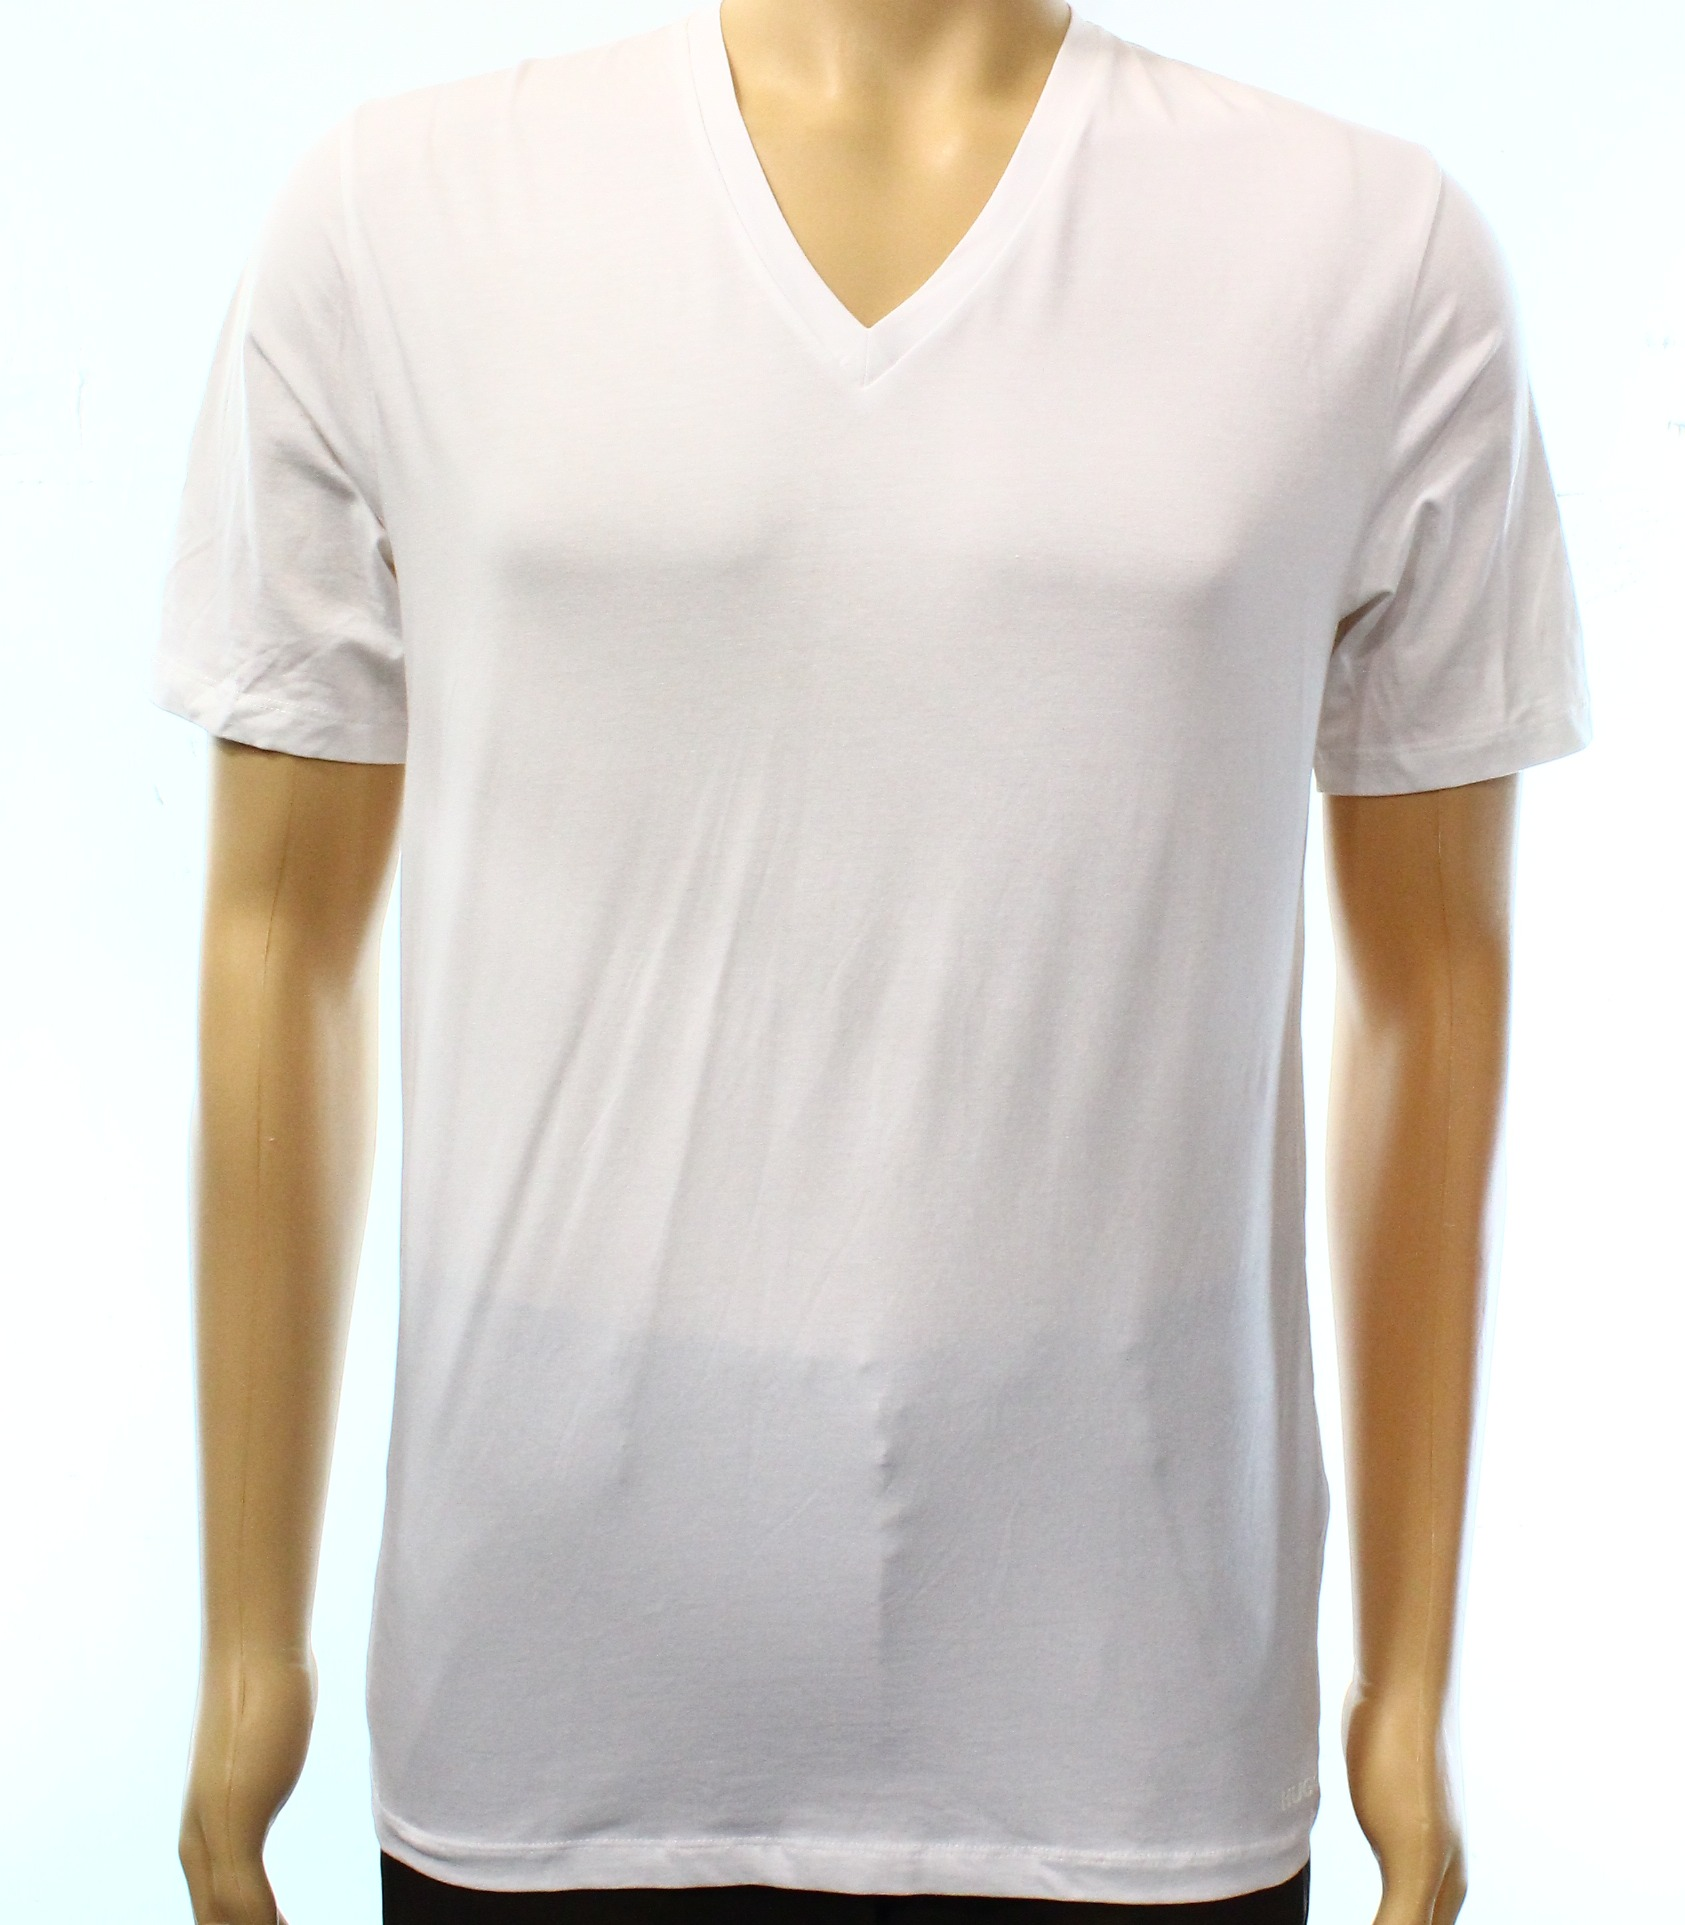 Hugo boss new white mens us size large l solid v neck t for Hugo boss t shirts amazon